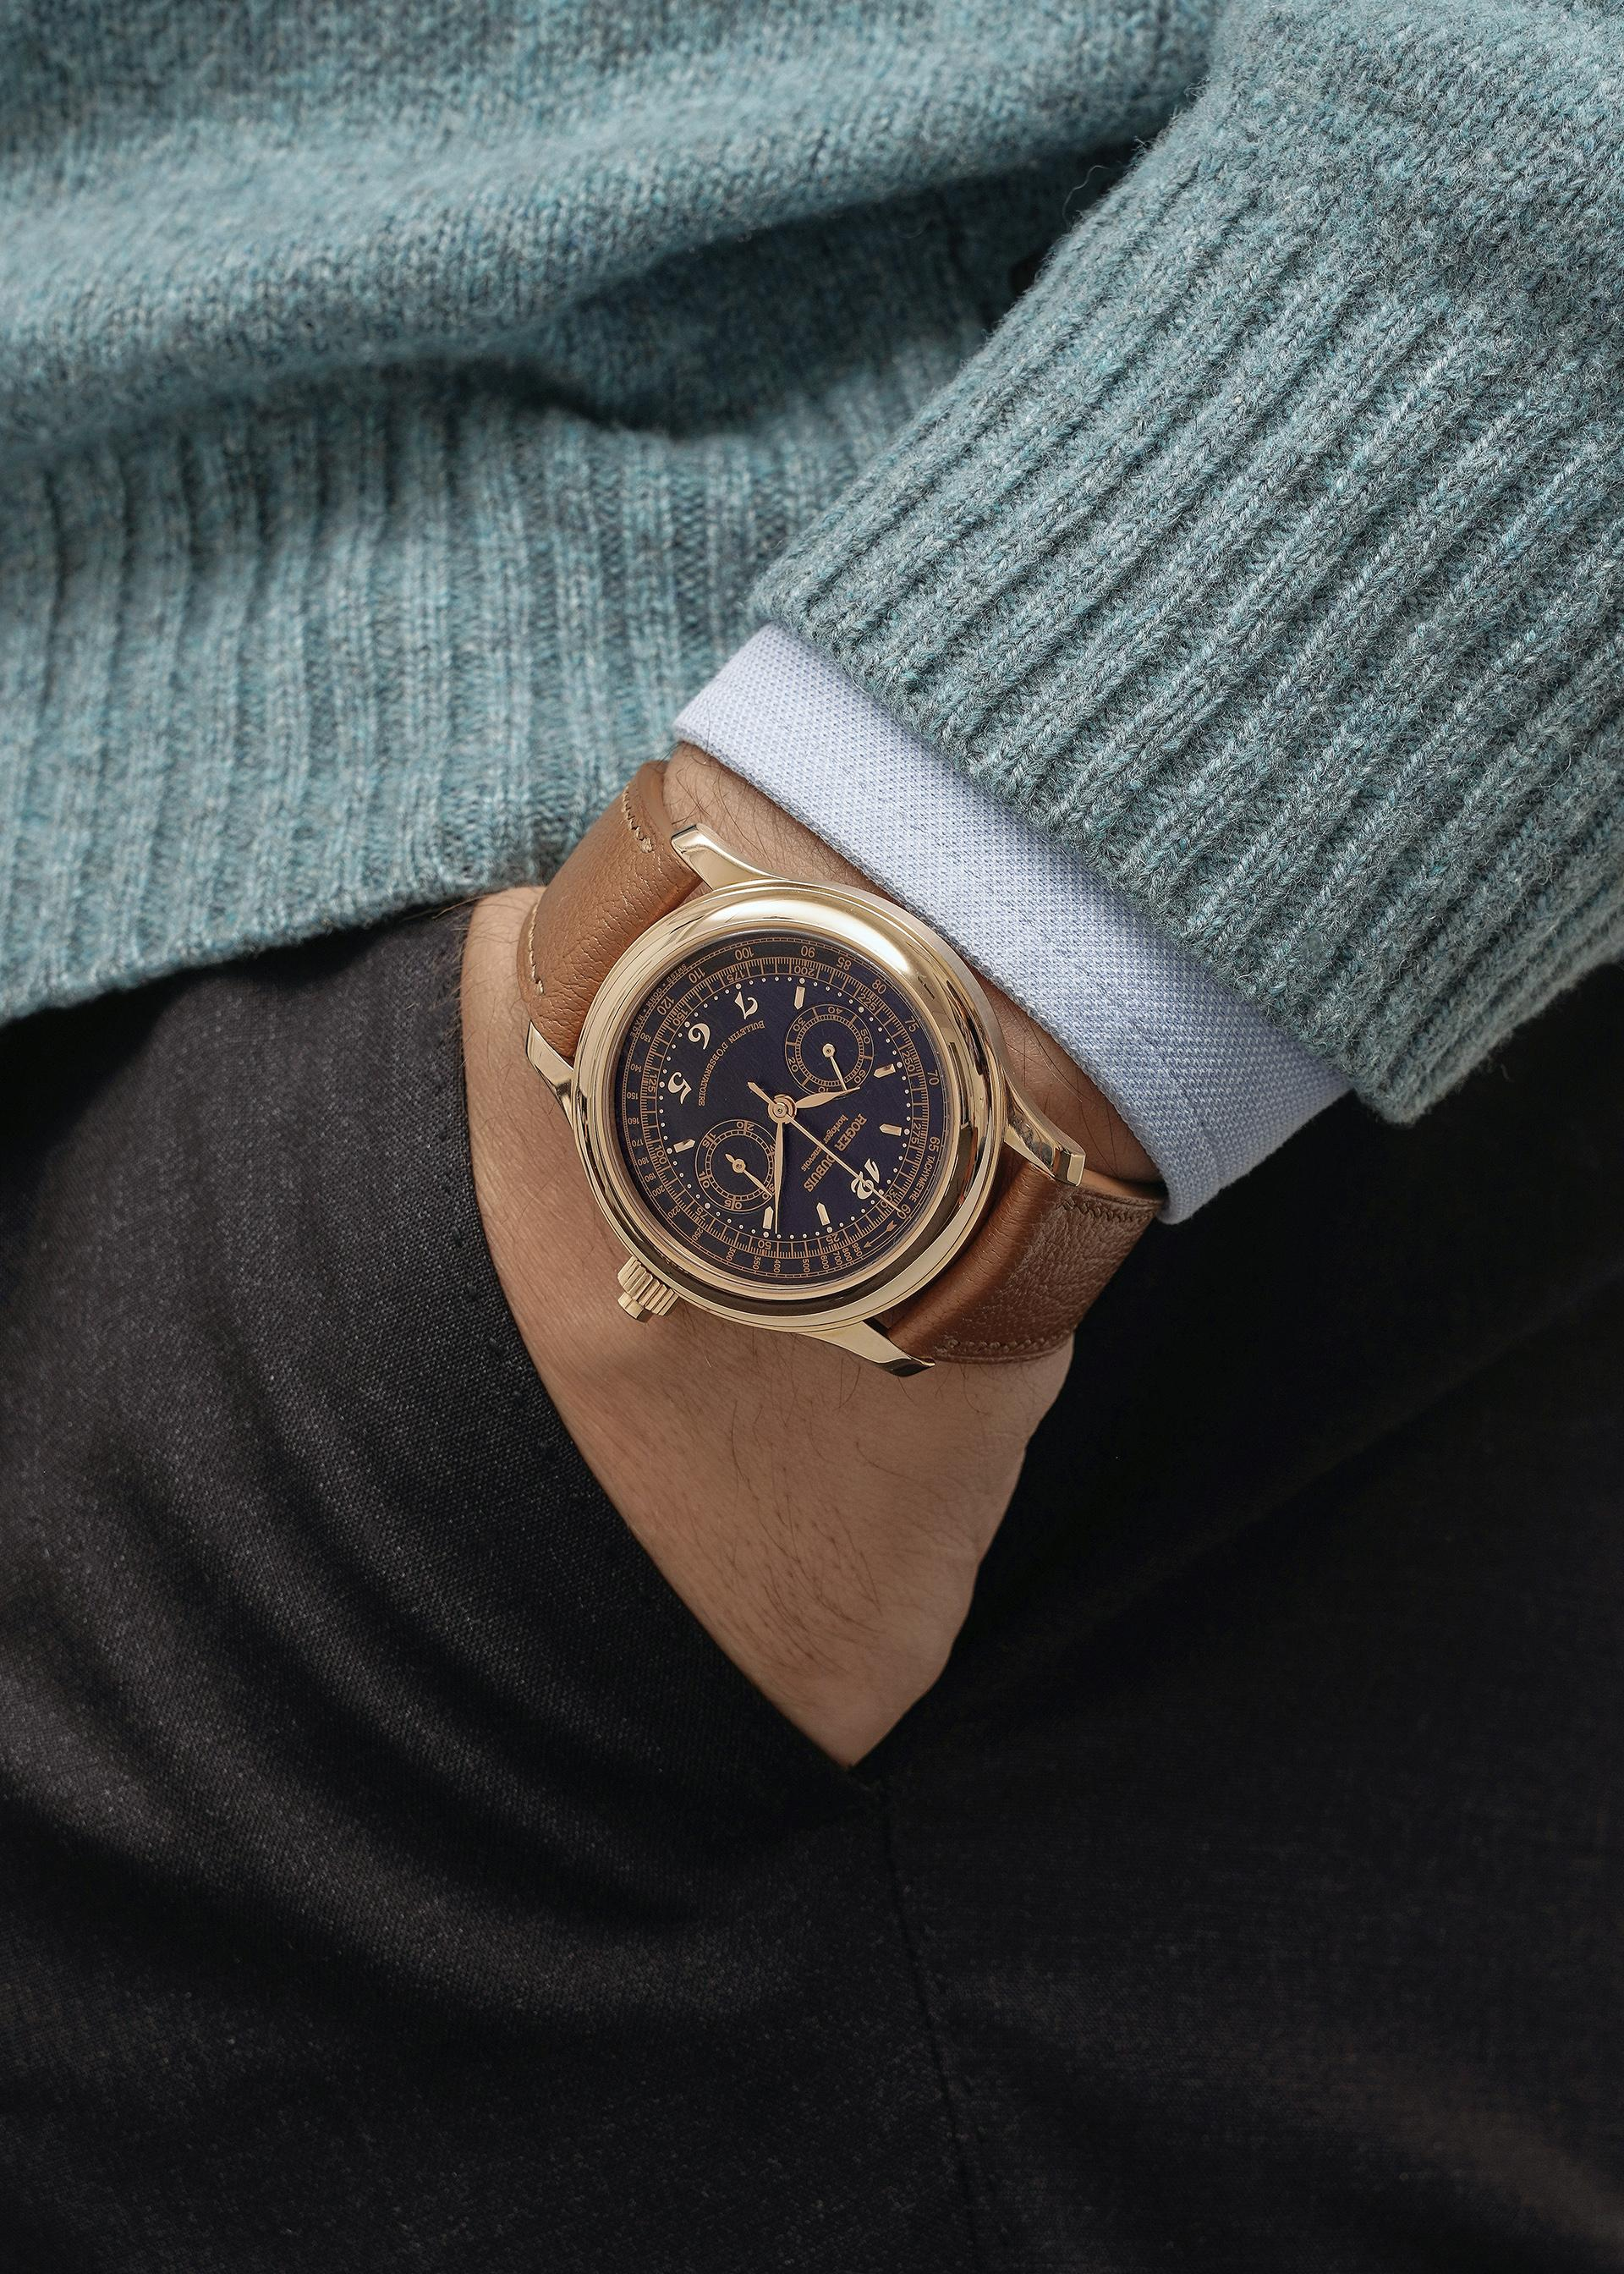 Roger Dubuis Hommage H40 monopusher in pink gold